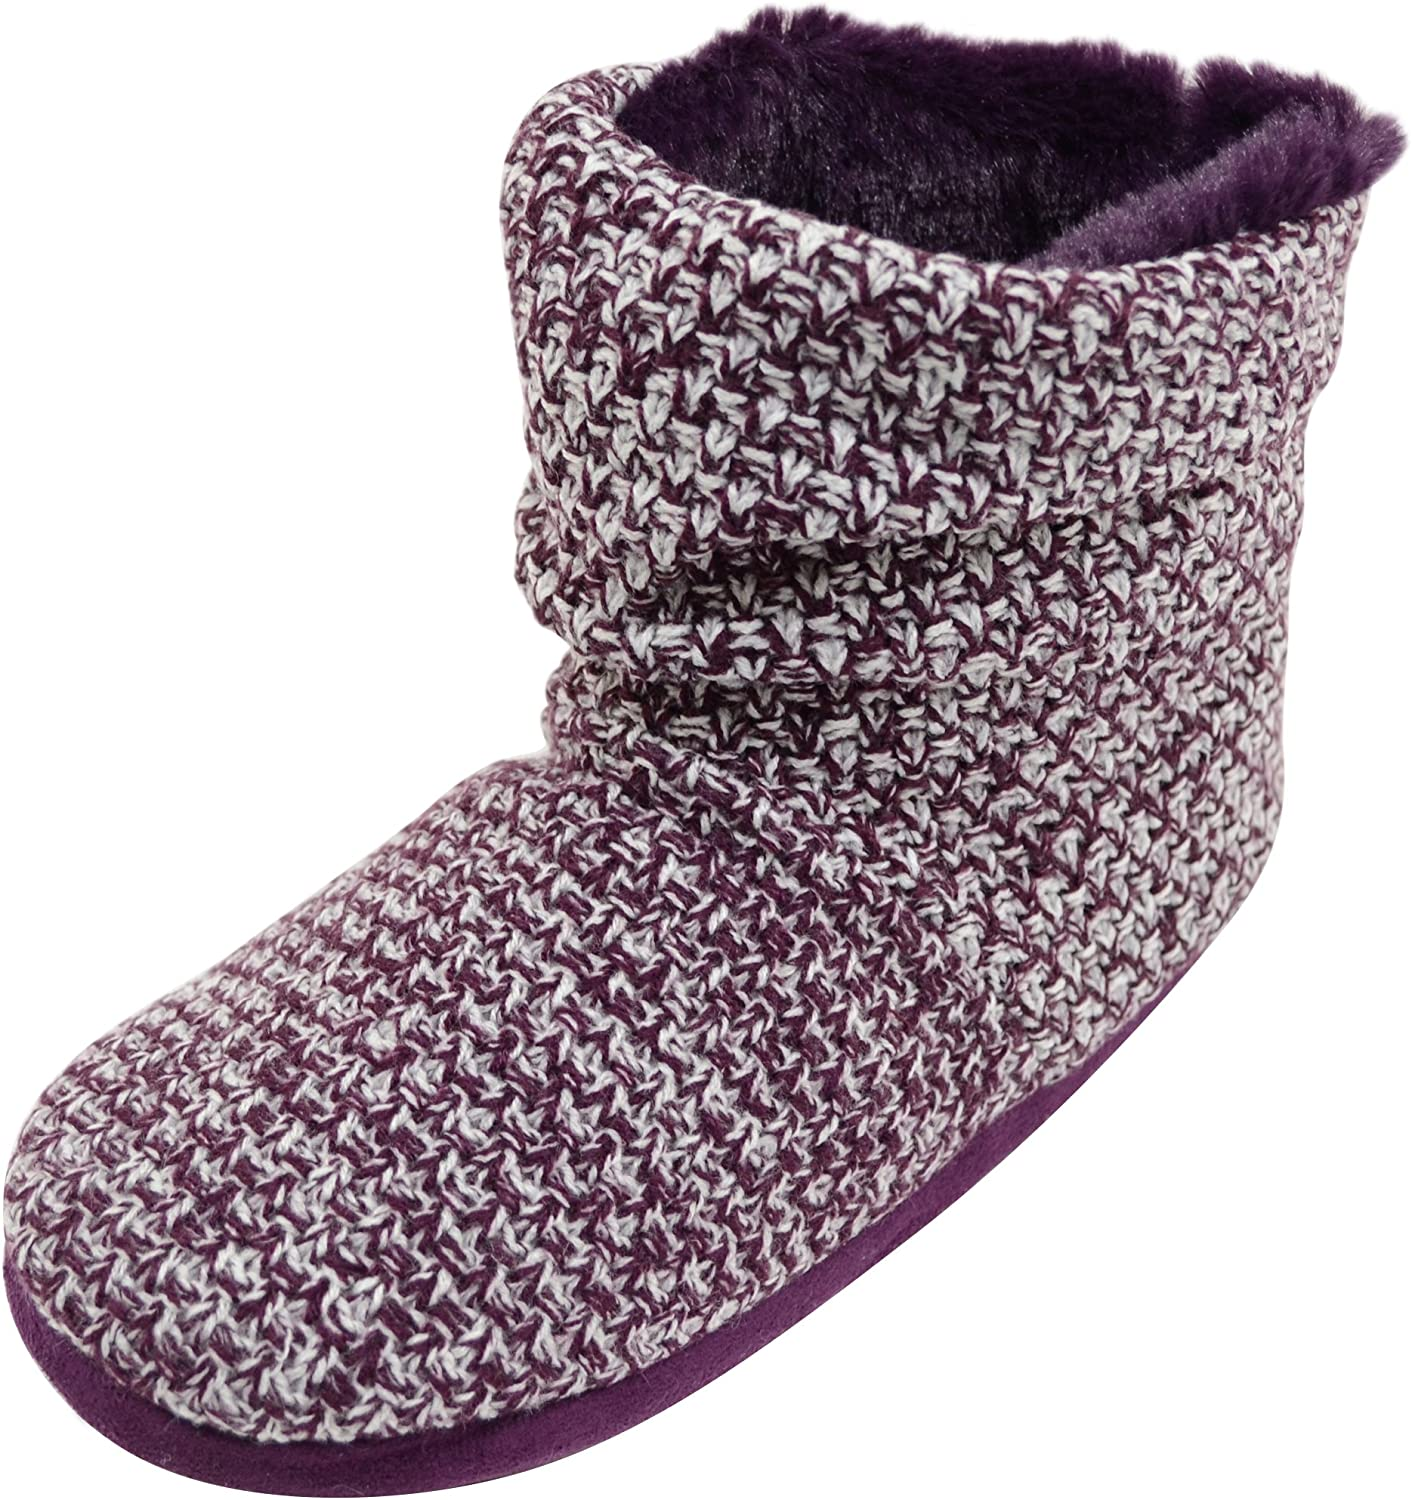 ABSOLUTE FOOTWEAR Ladies Womens Knitted Style Boots Bootie Slippers with Button Feature - Plum - 9 US